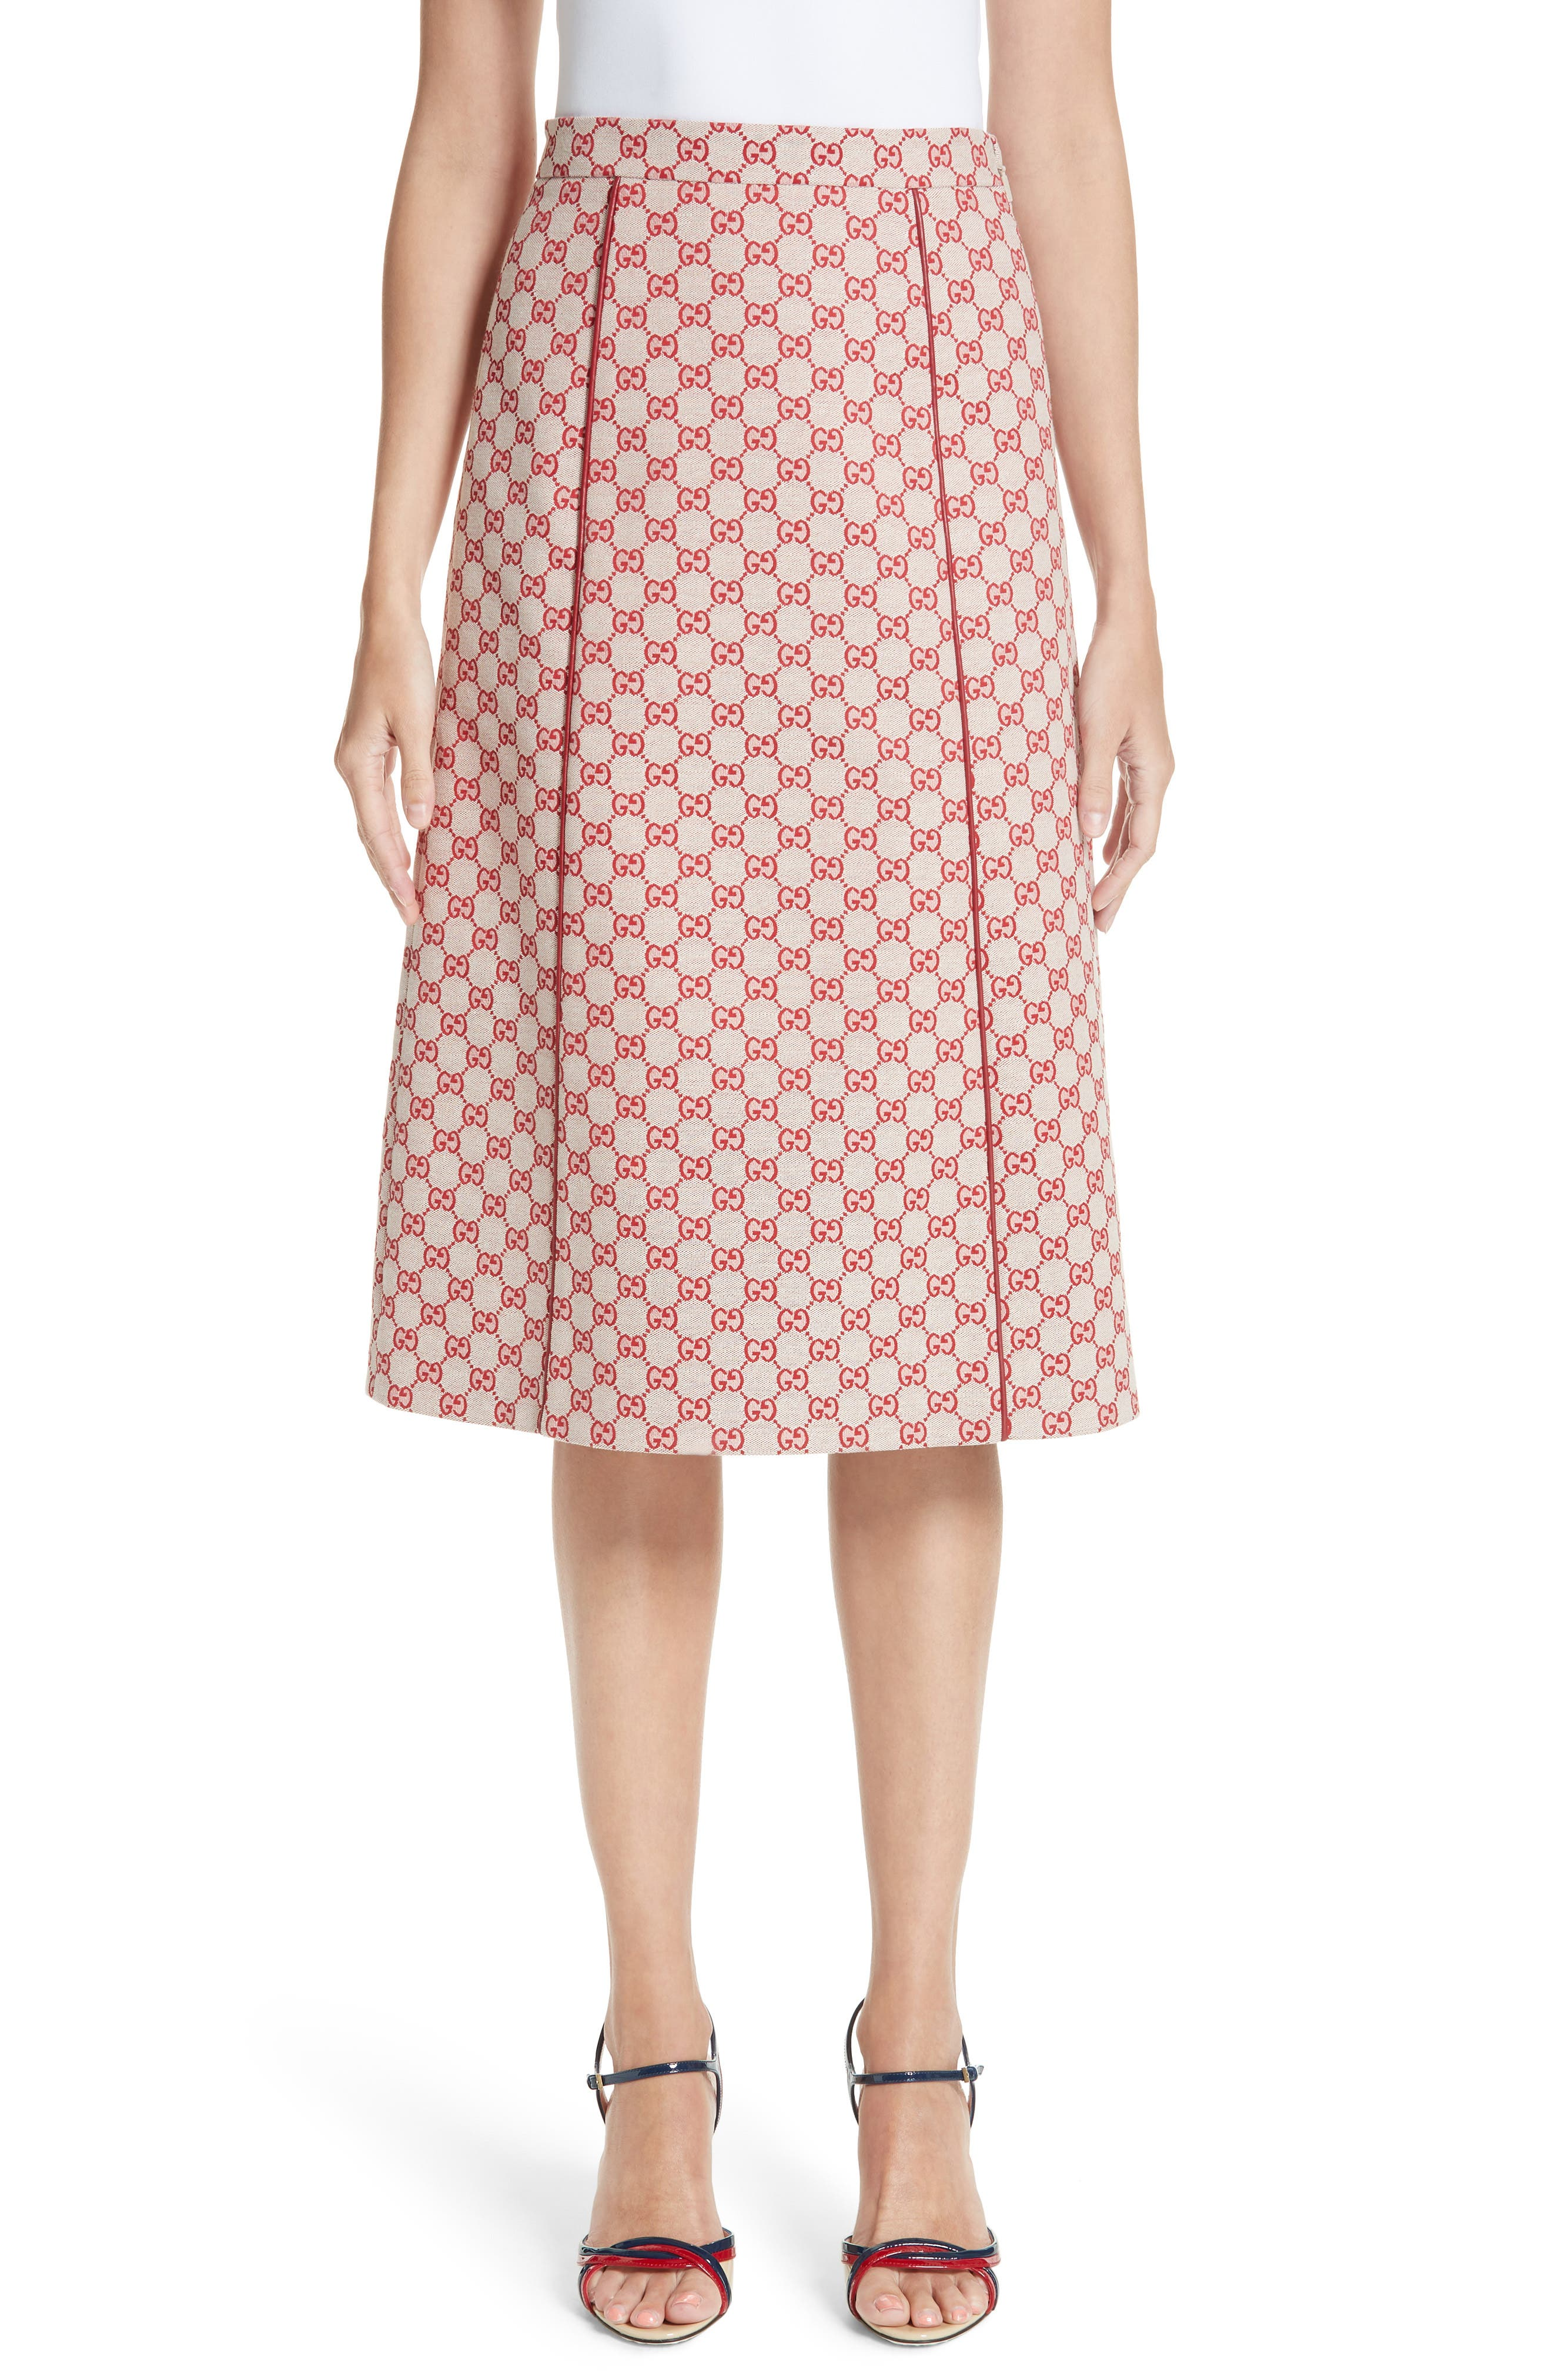 GG Print Canvas A-Line Skirt,                         Main,                         color, Gardenia/ Hibiscus Red